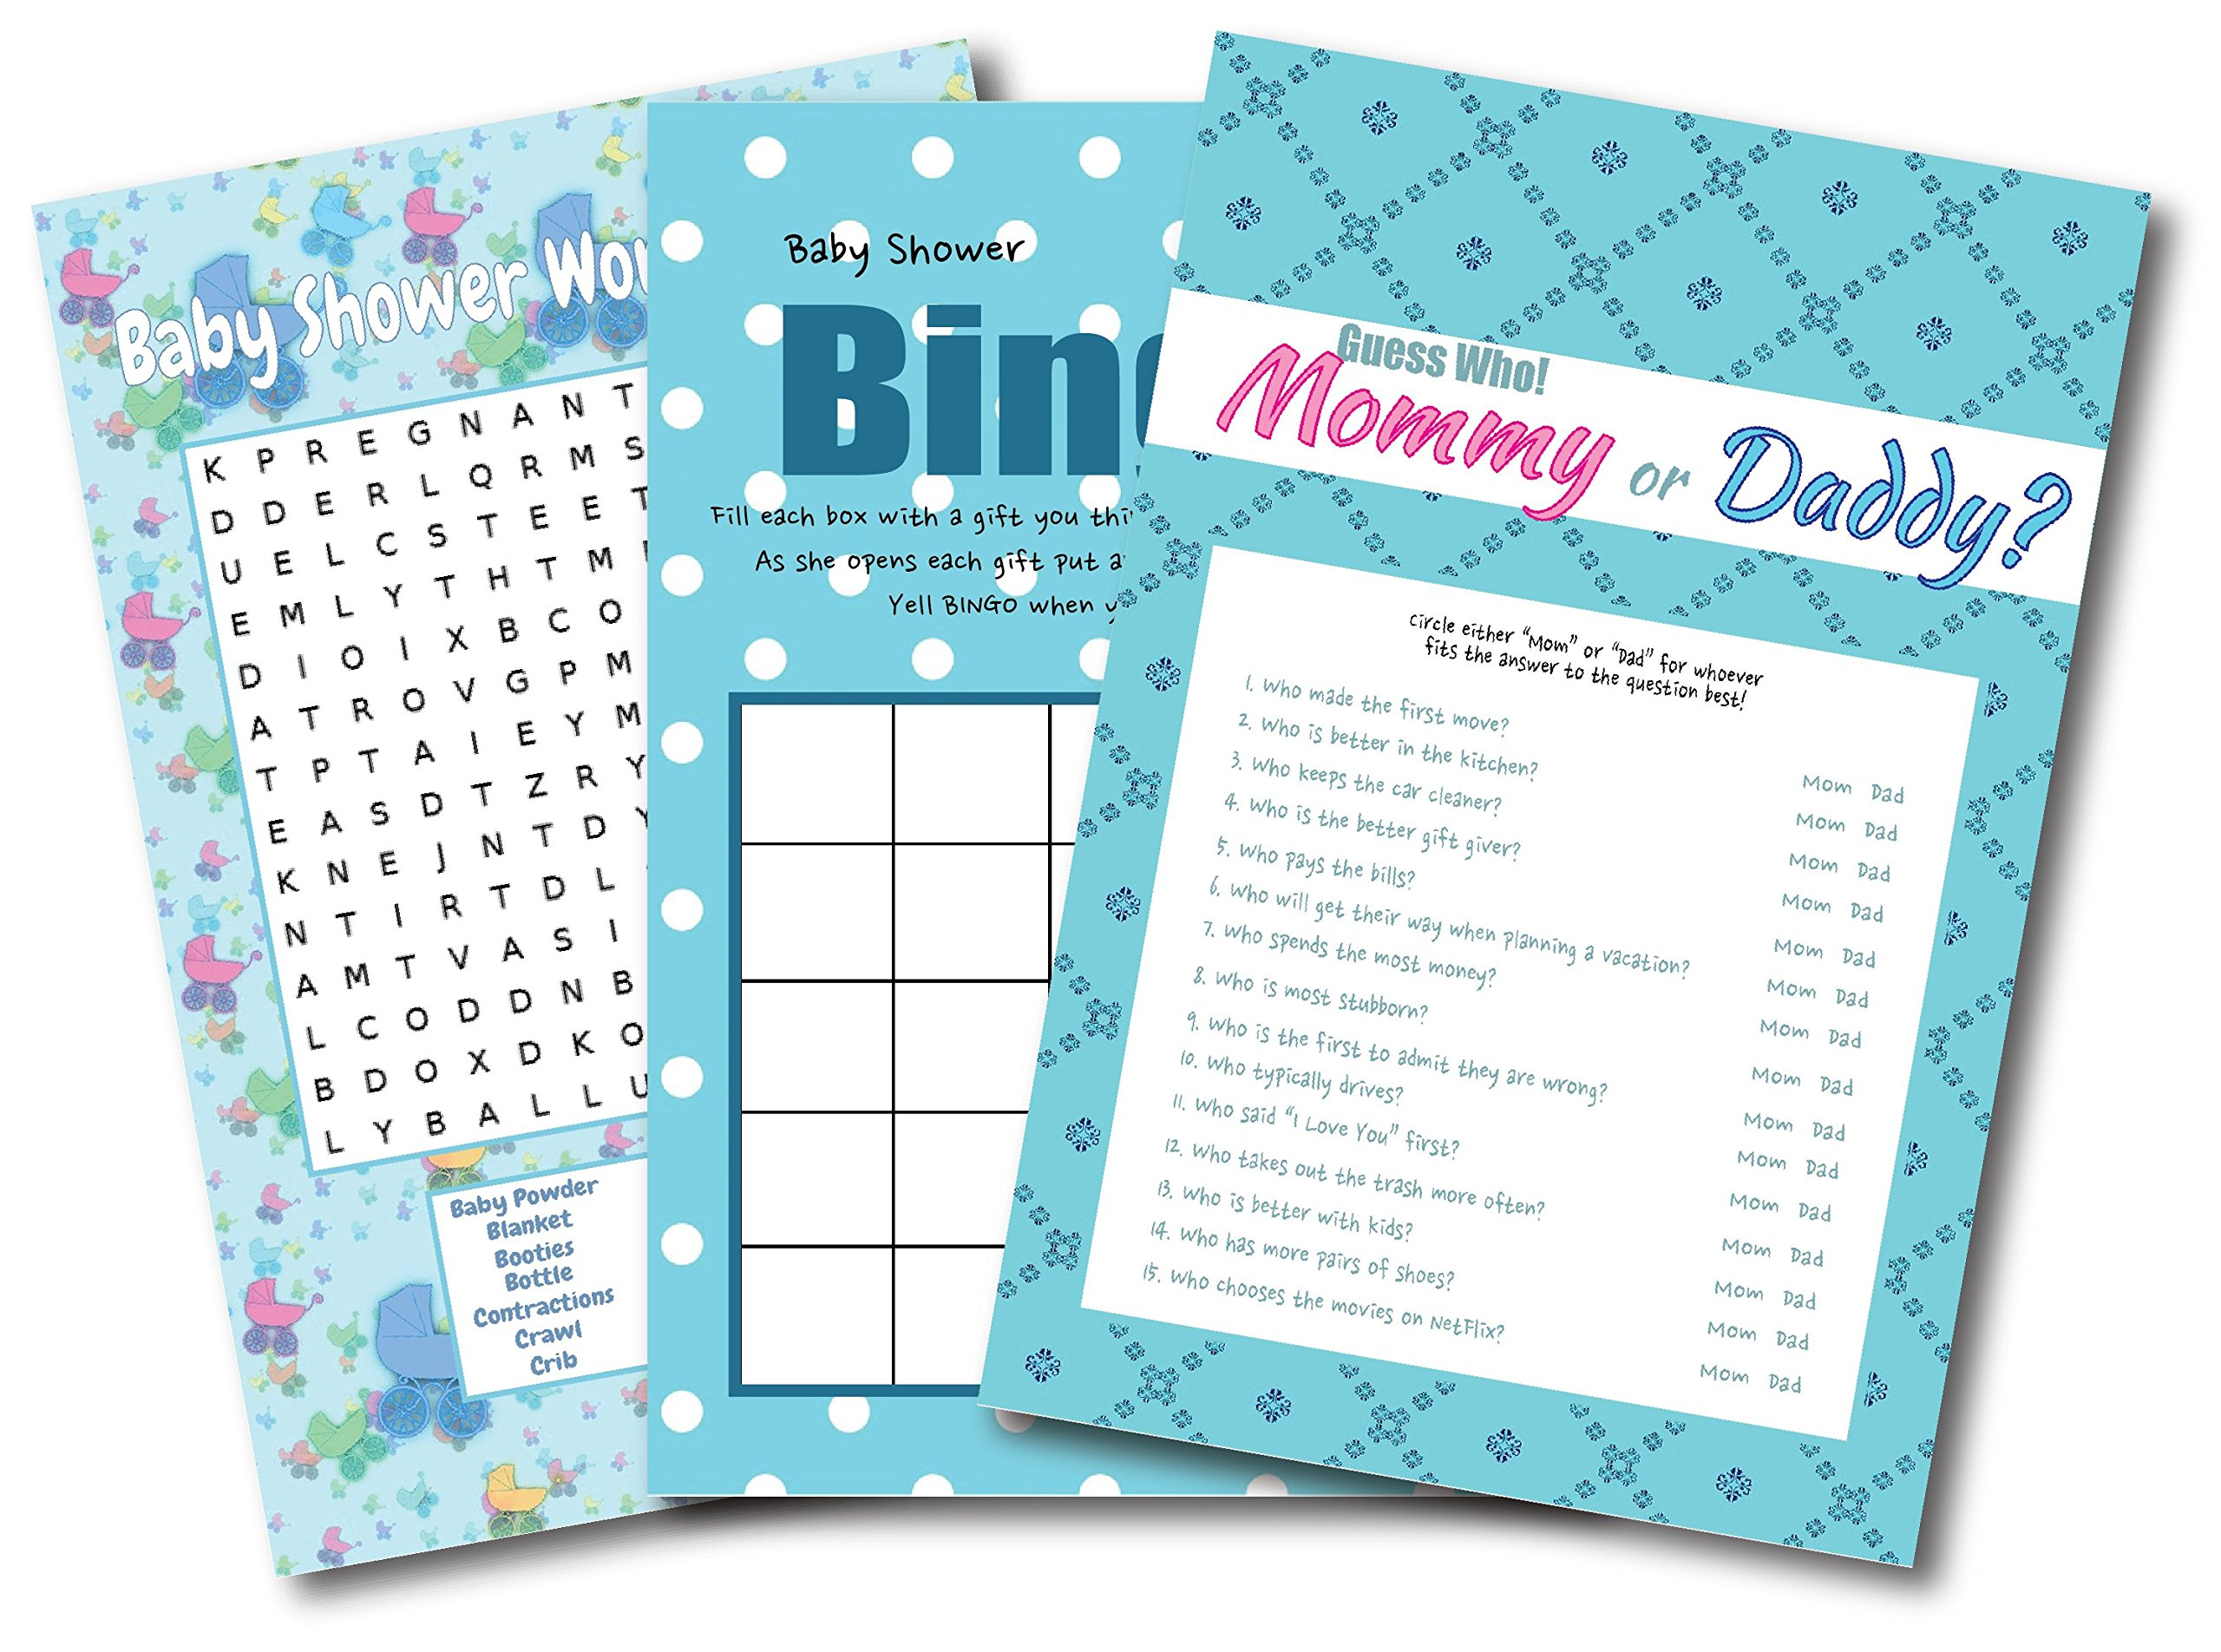 Baby Shower Games For Boys | By L&P Designs | Blue Baby Boy Party Ideas (Mommy or Daddy, Word Search and Bingo)